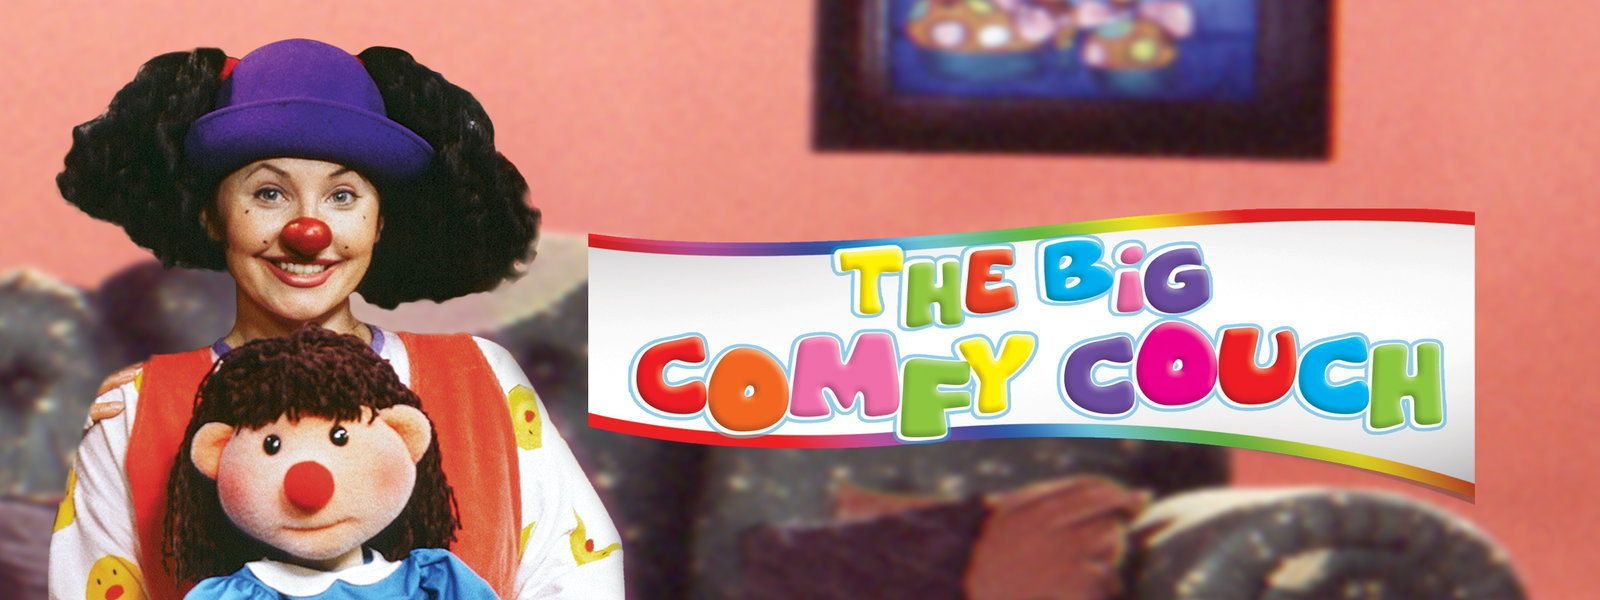 Big Comfy Chair Here 39s What Loonette The Clown From The Big Comfy Couch